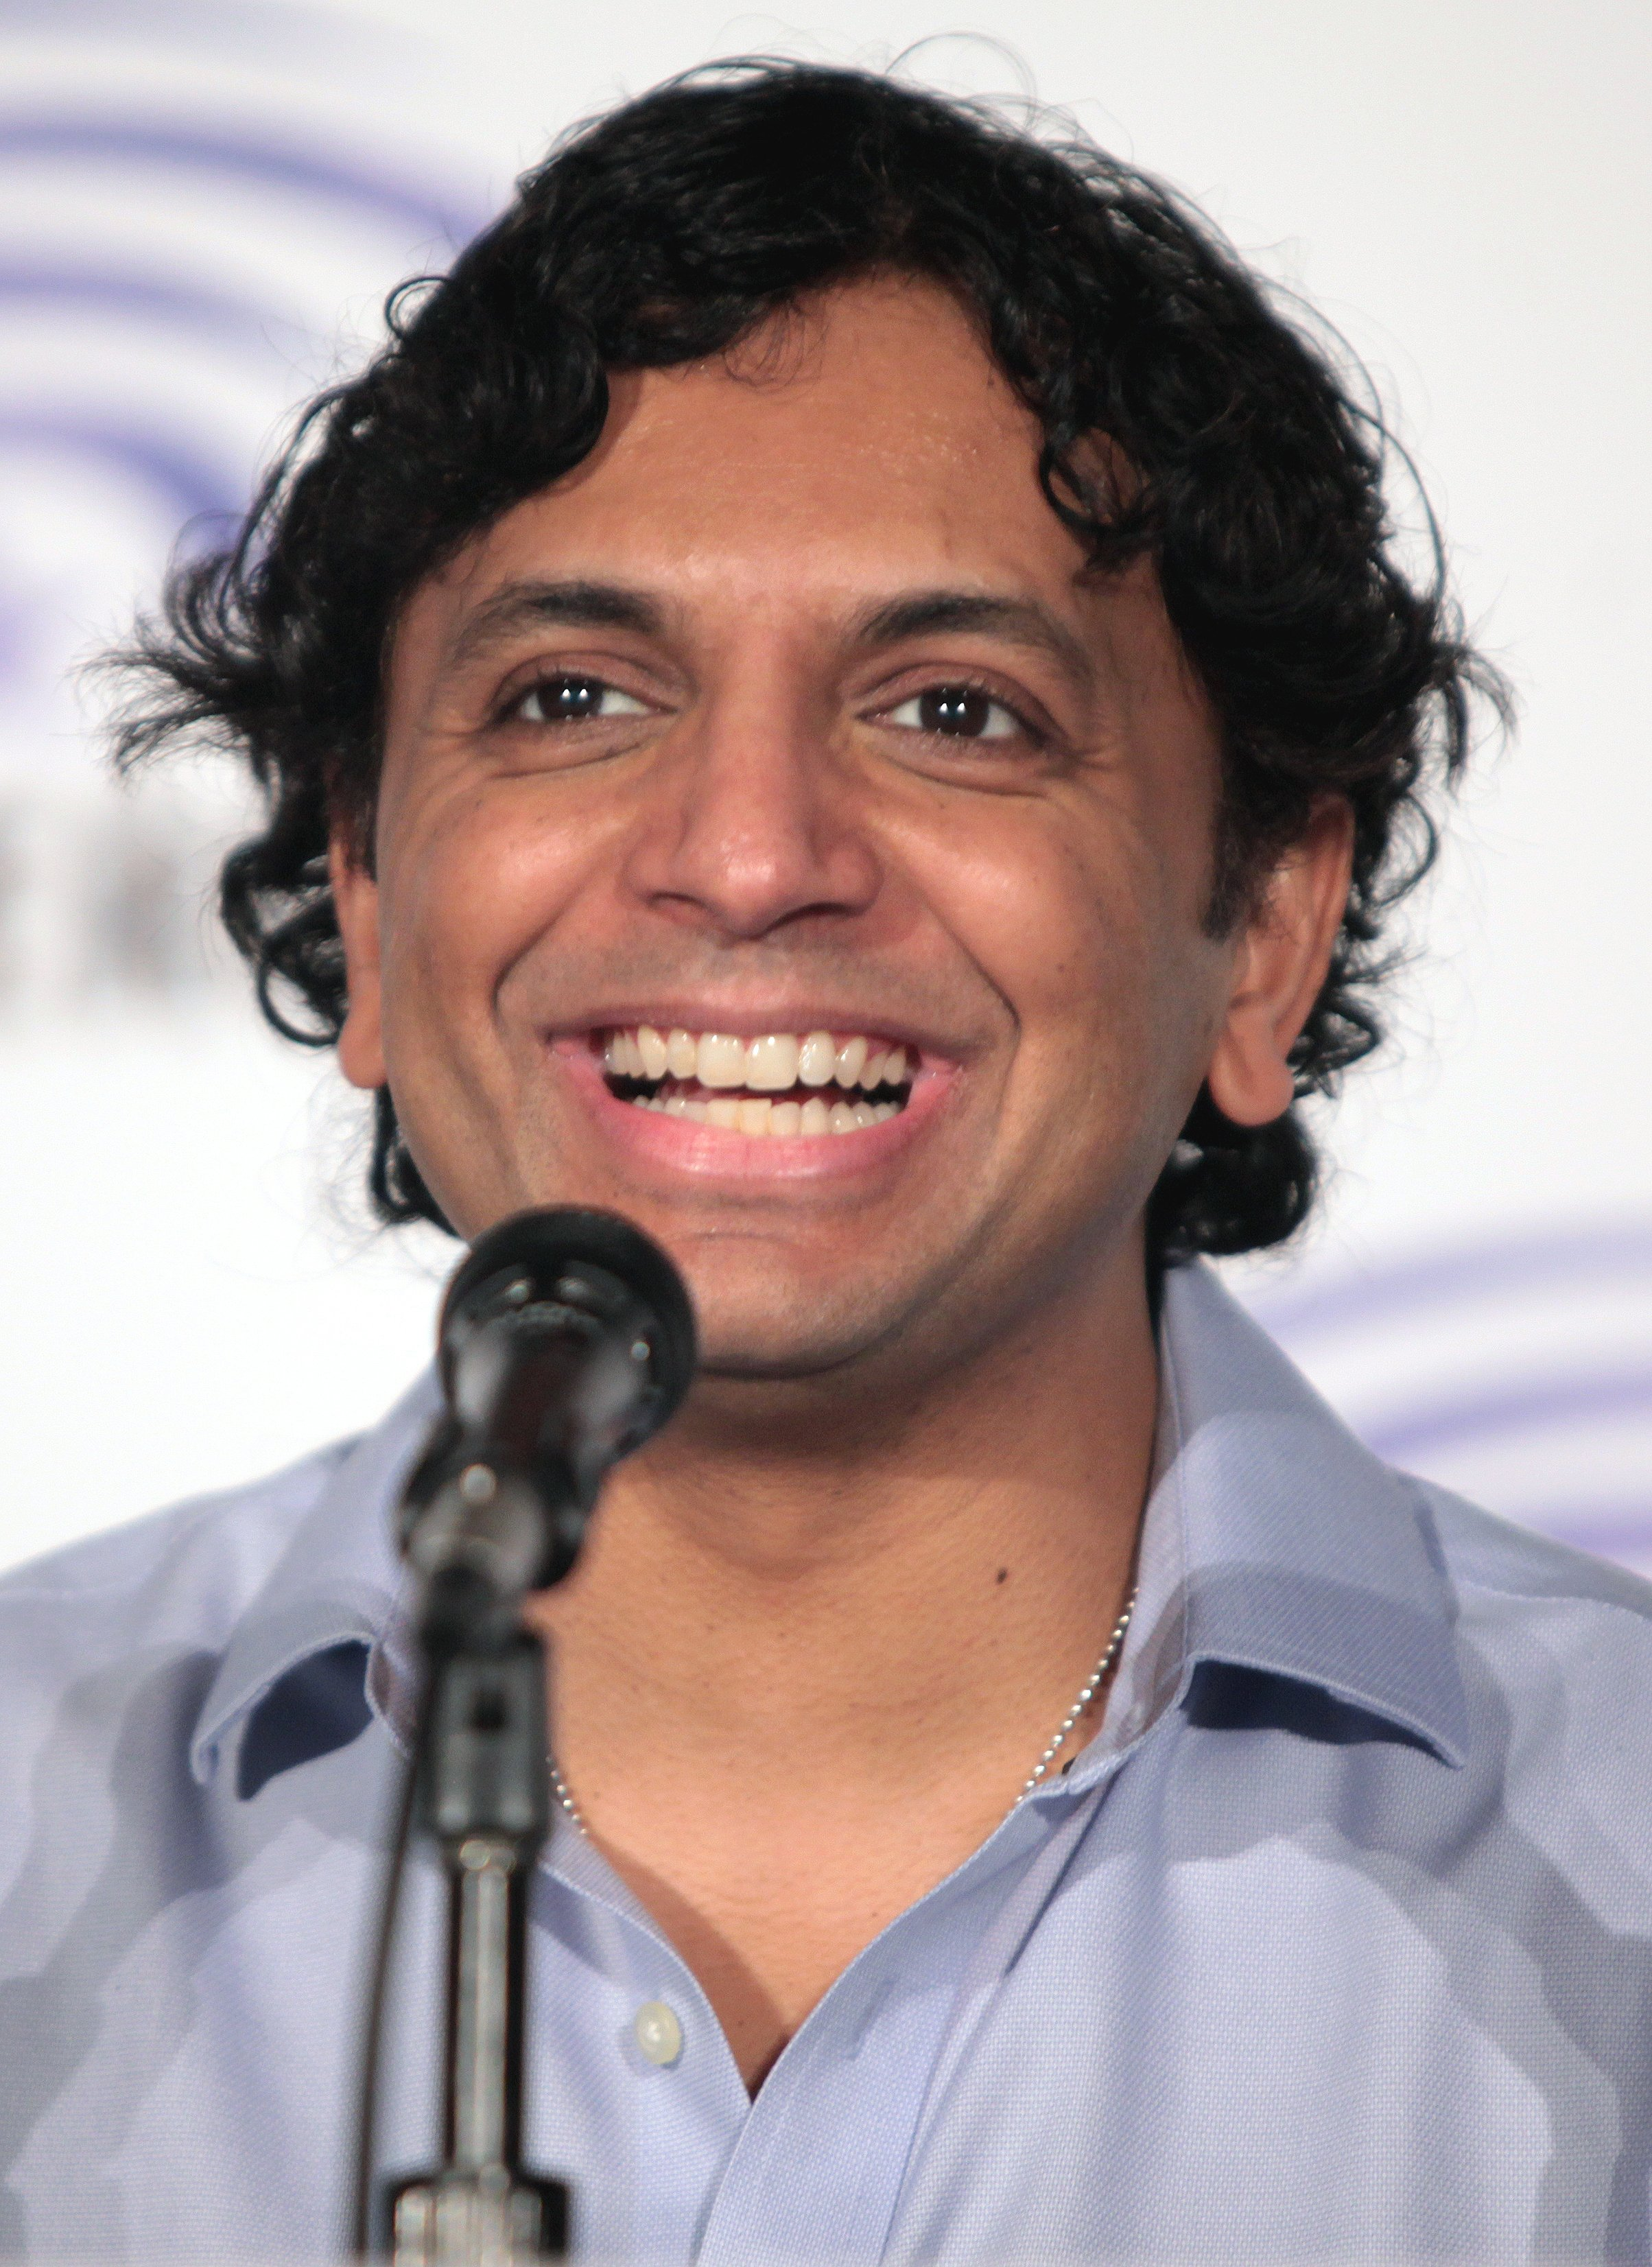 M. Night Shyamalan speaking at the 2016 WonderCon in Los Angeles, California. | Getty Images